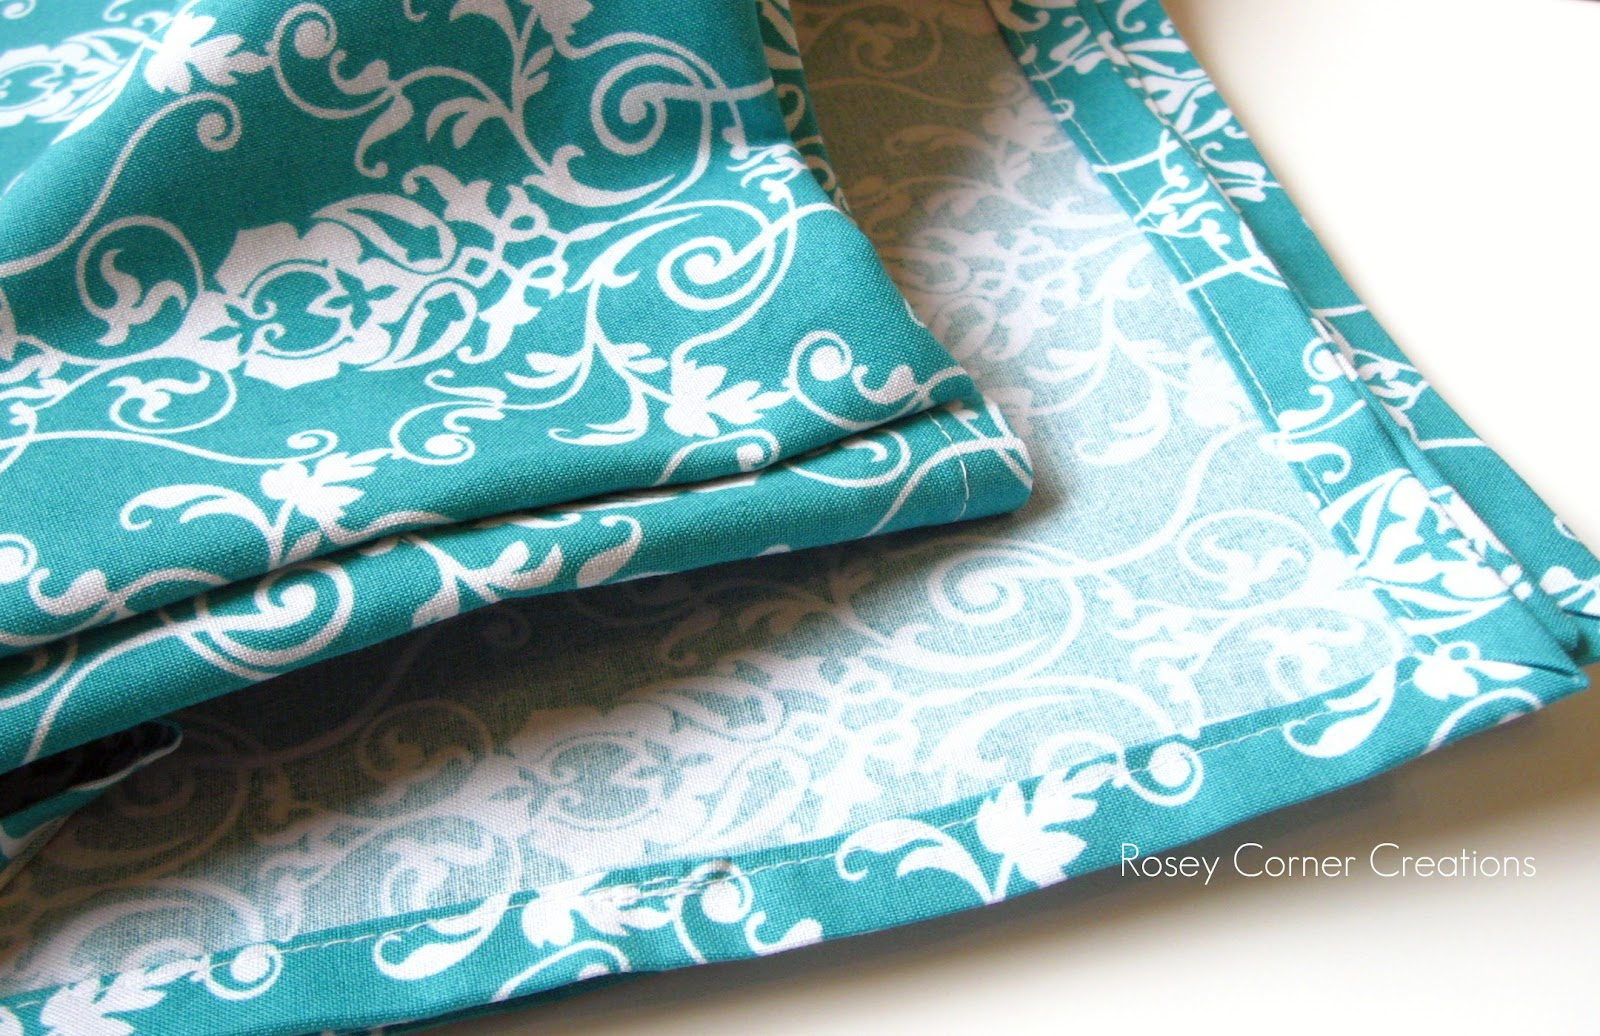 Mitred%2BCorner%2BTutorial%2B2 for blankets and burp